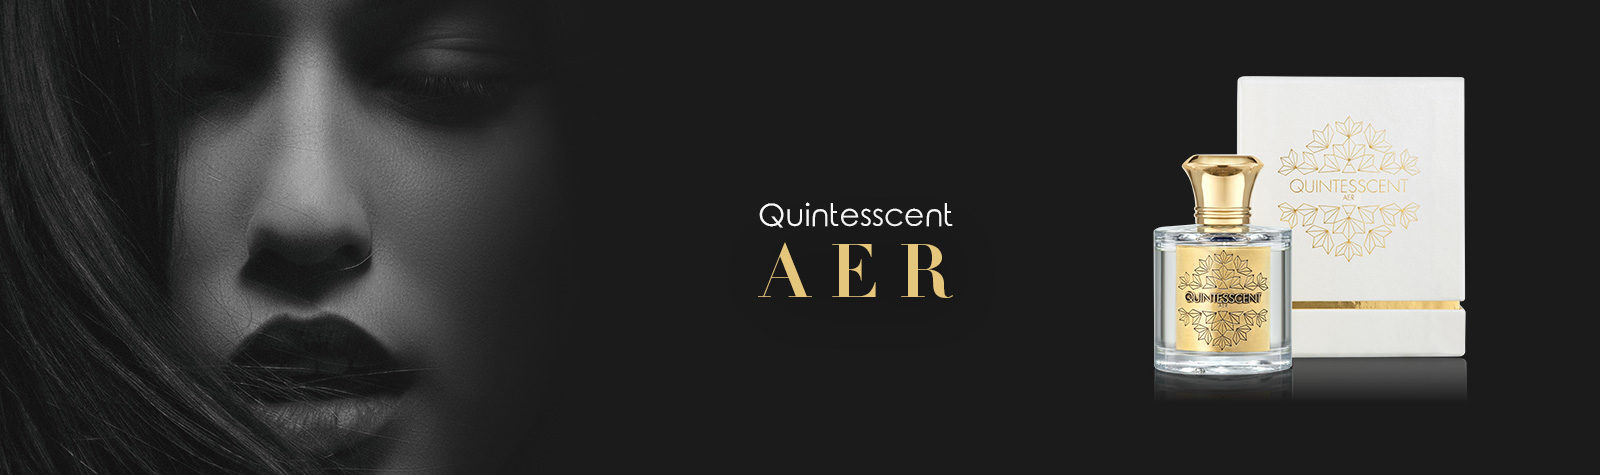 Quintesscent.com | A scent is the time capsule | Aer